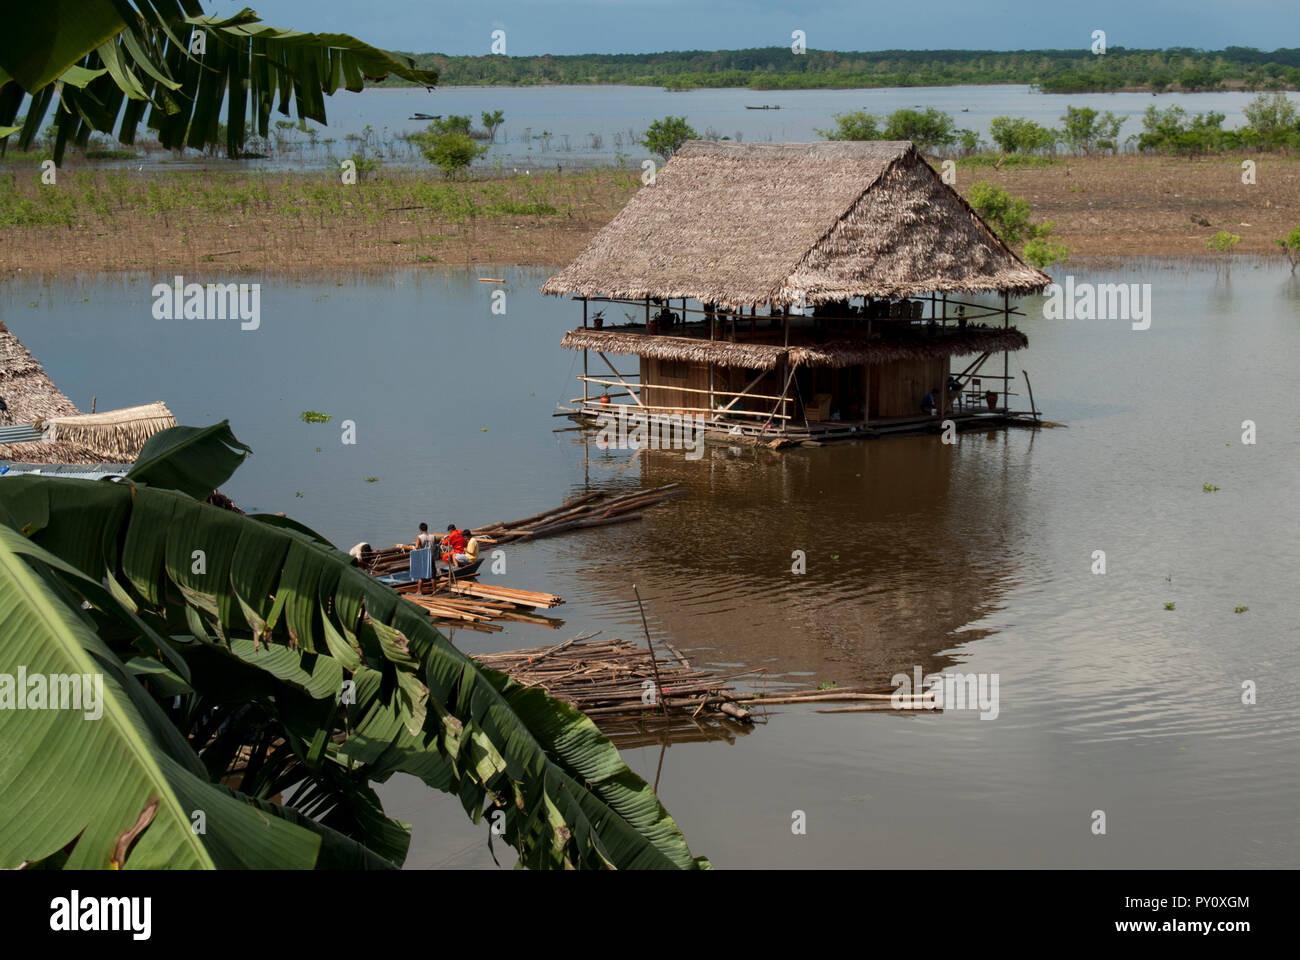 jungle house built on the river. - Stock Image